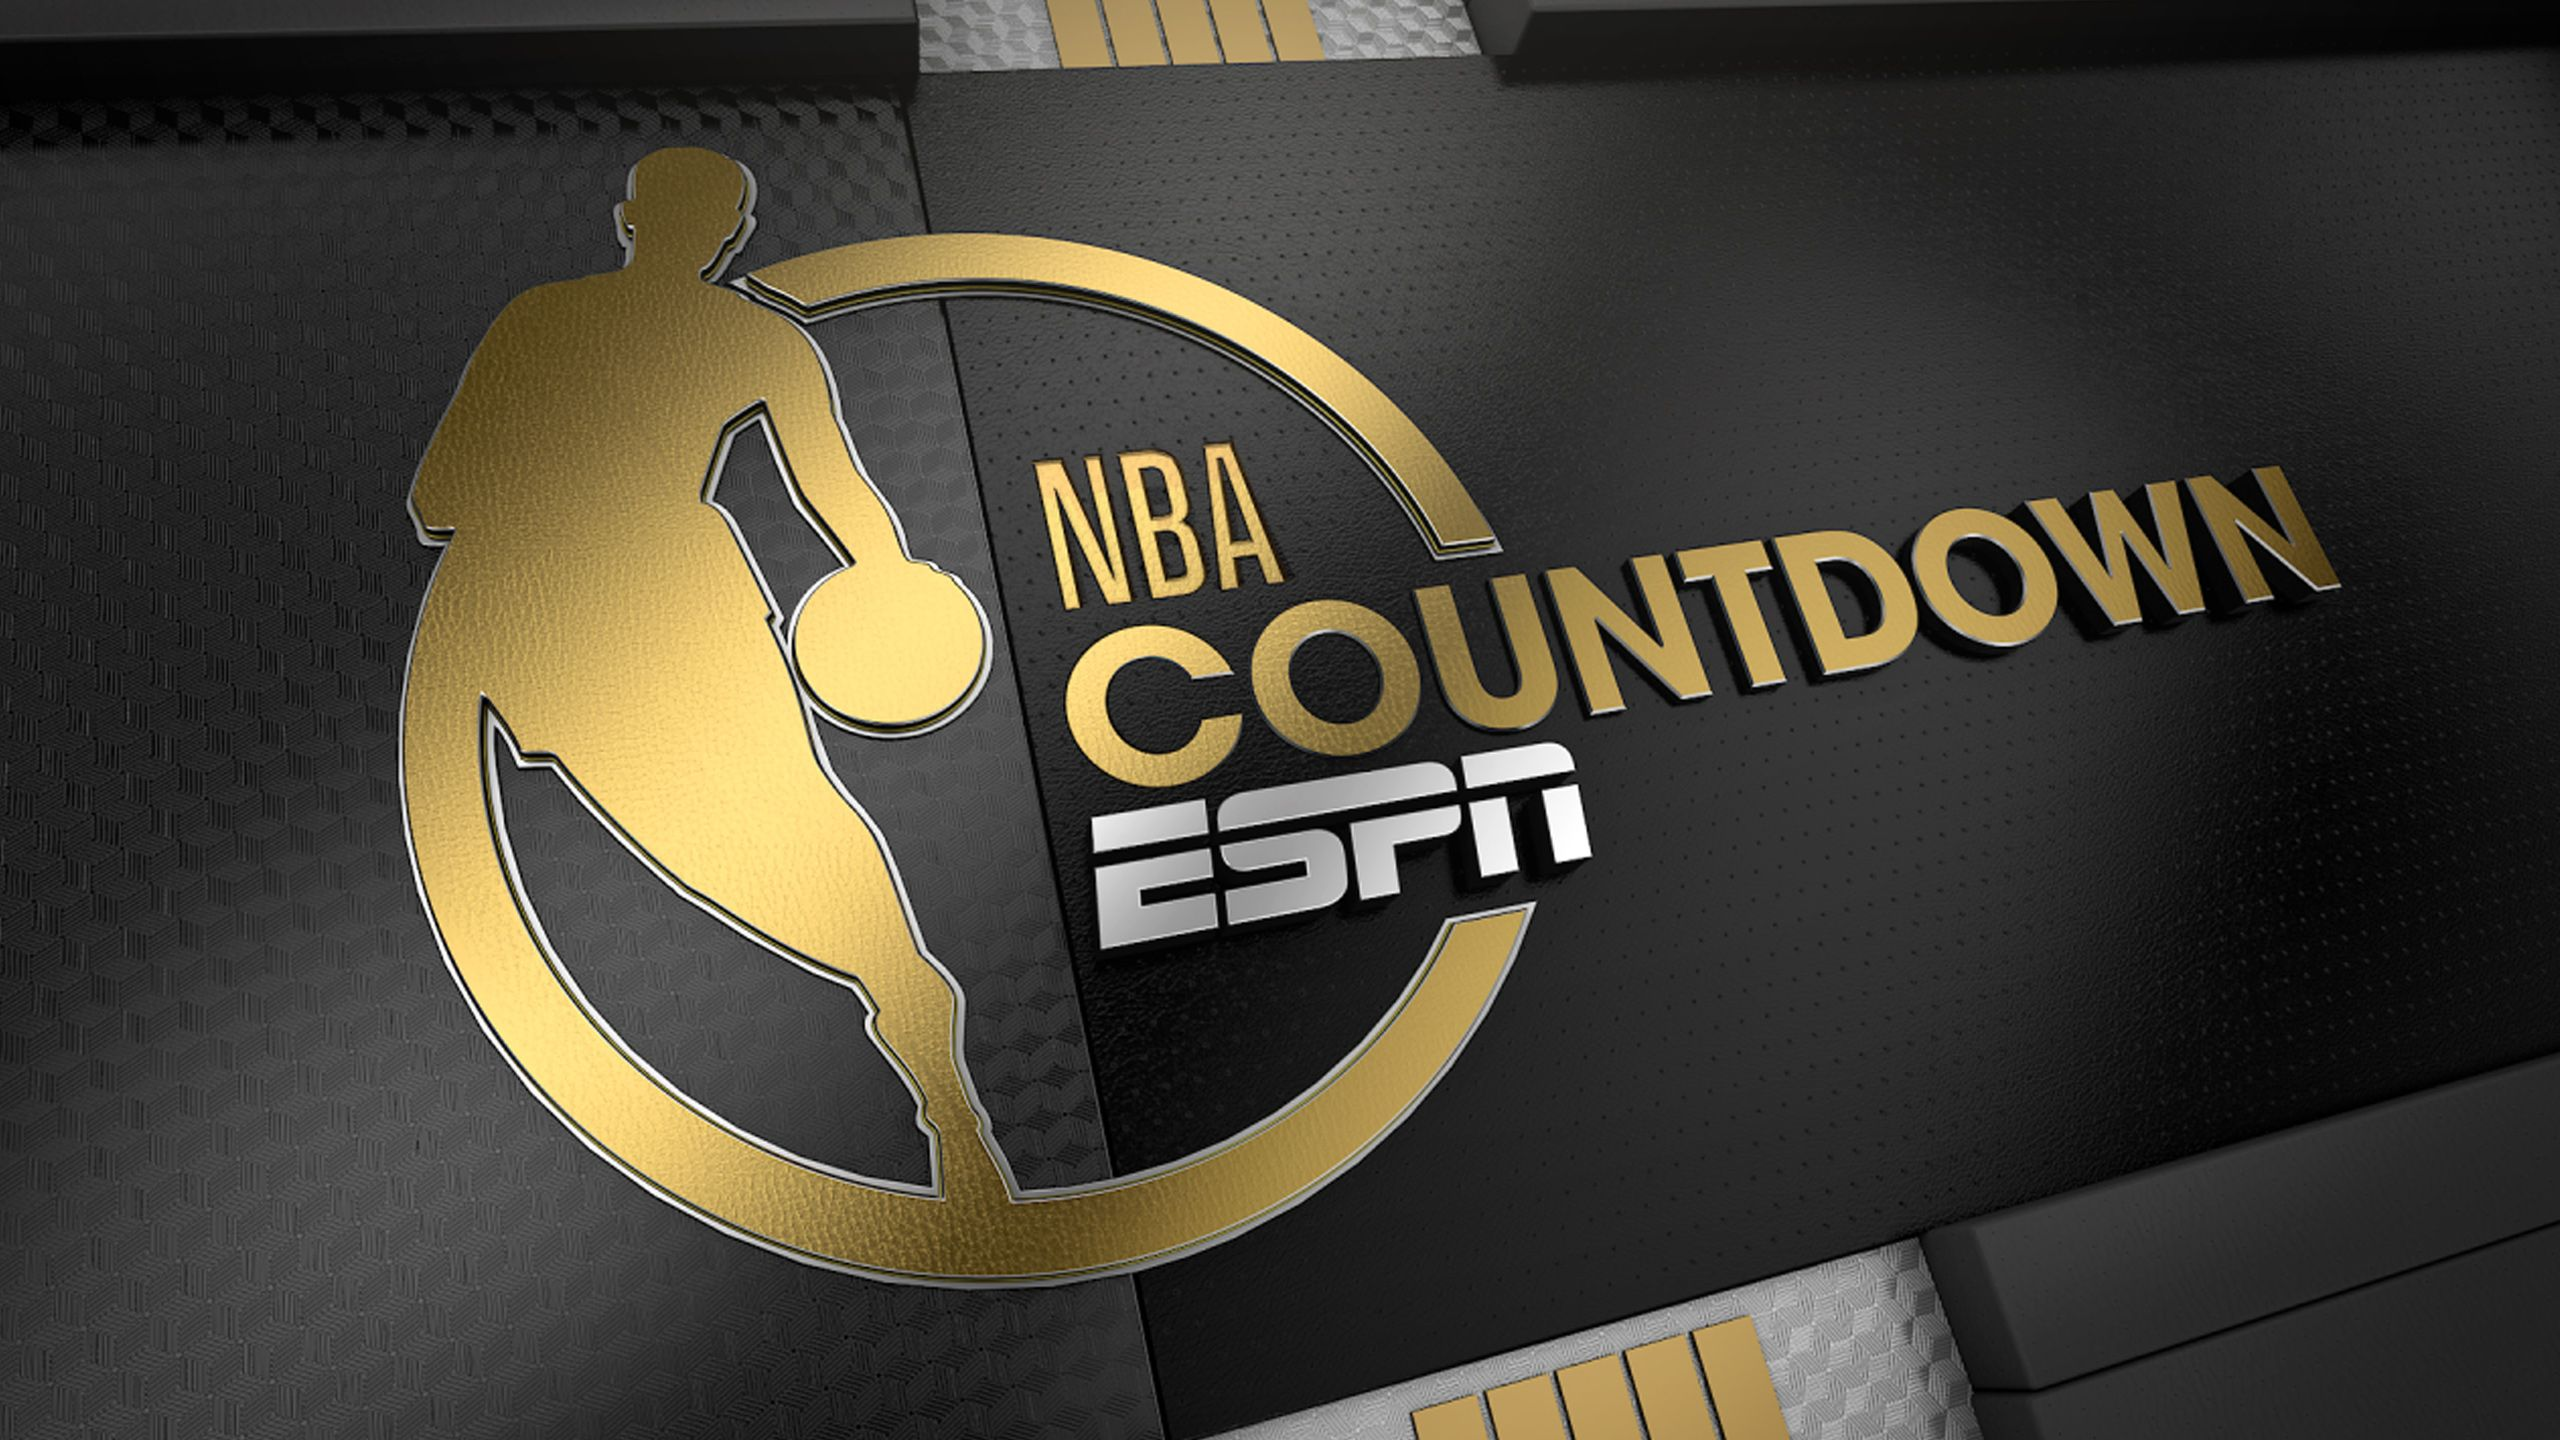 NBA Countdown Presented by Mountain Dew